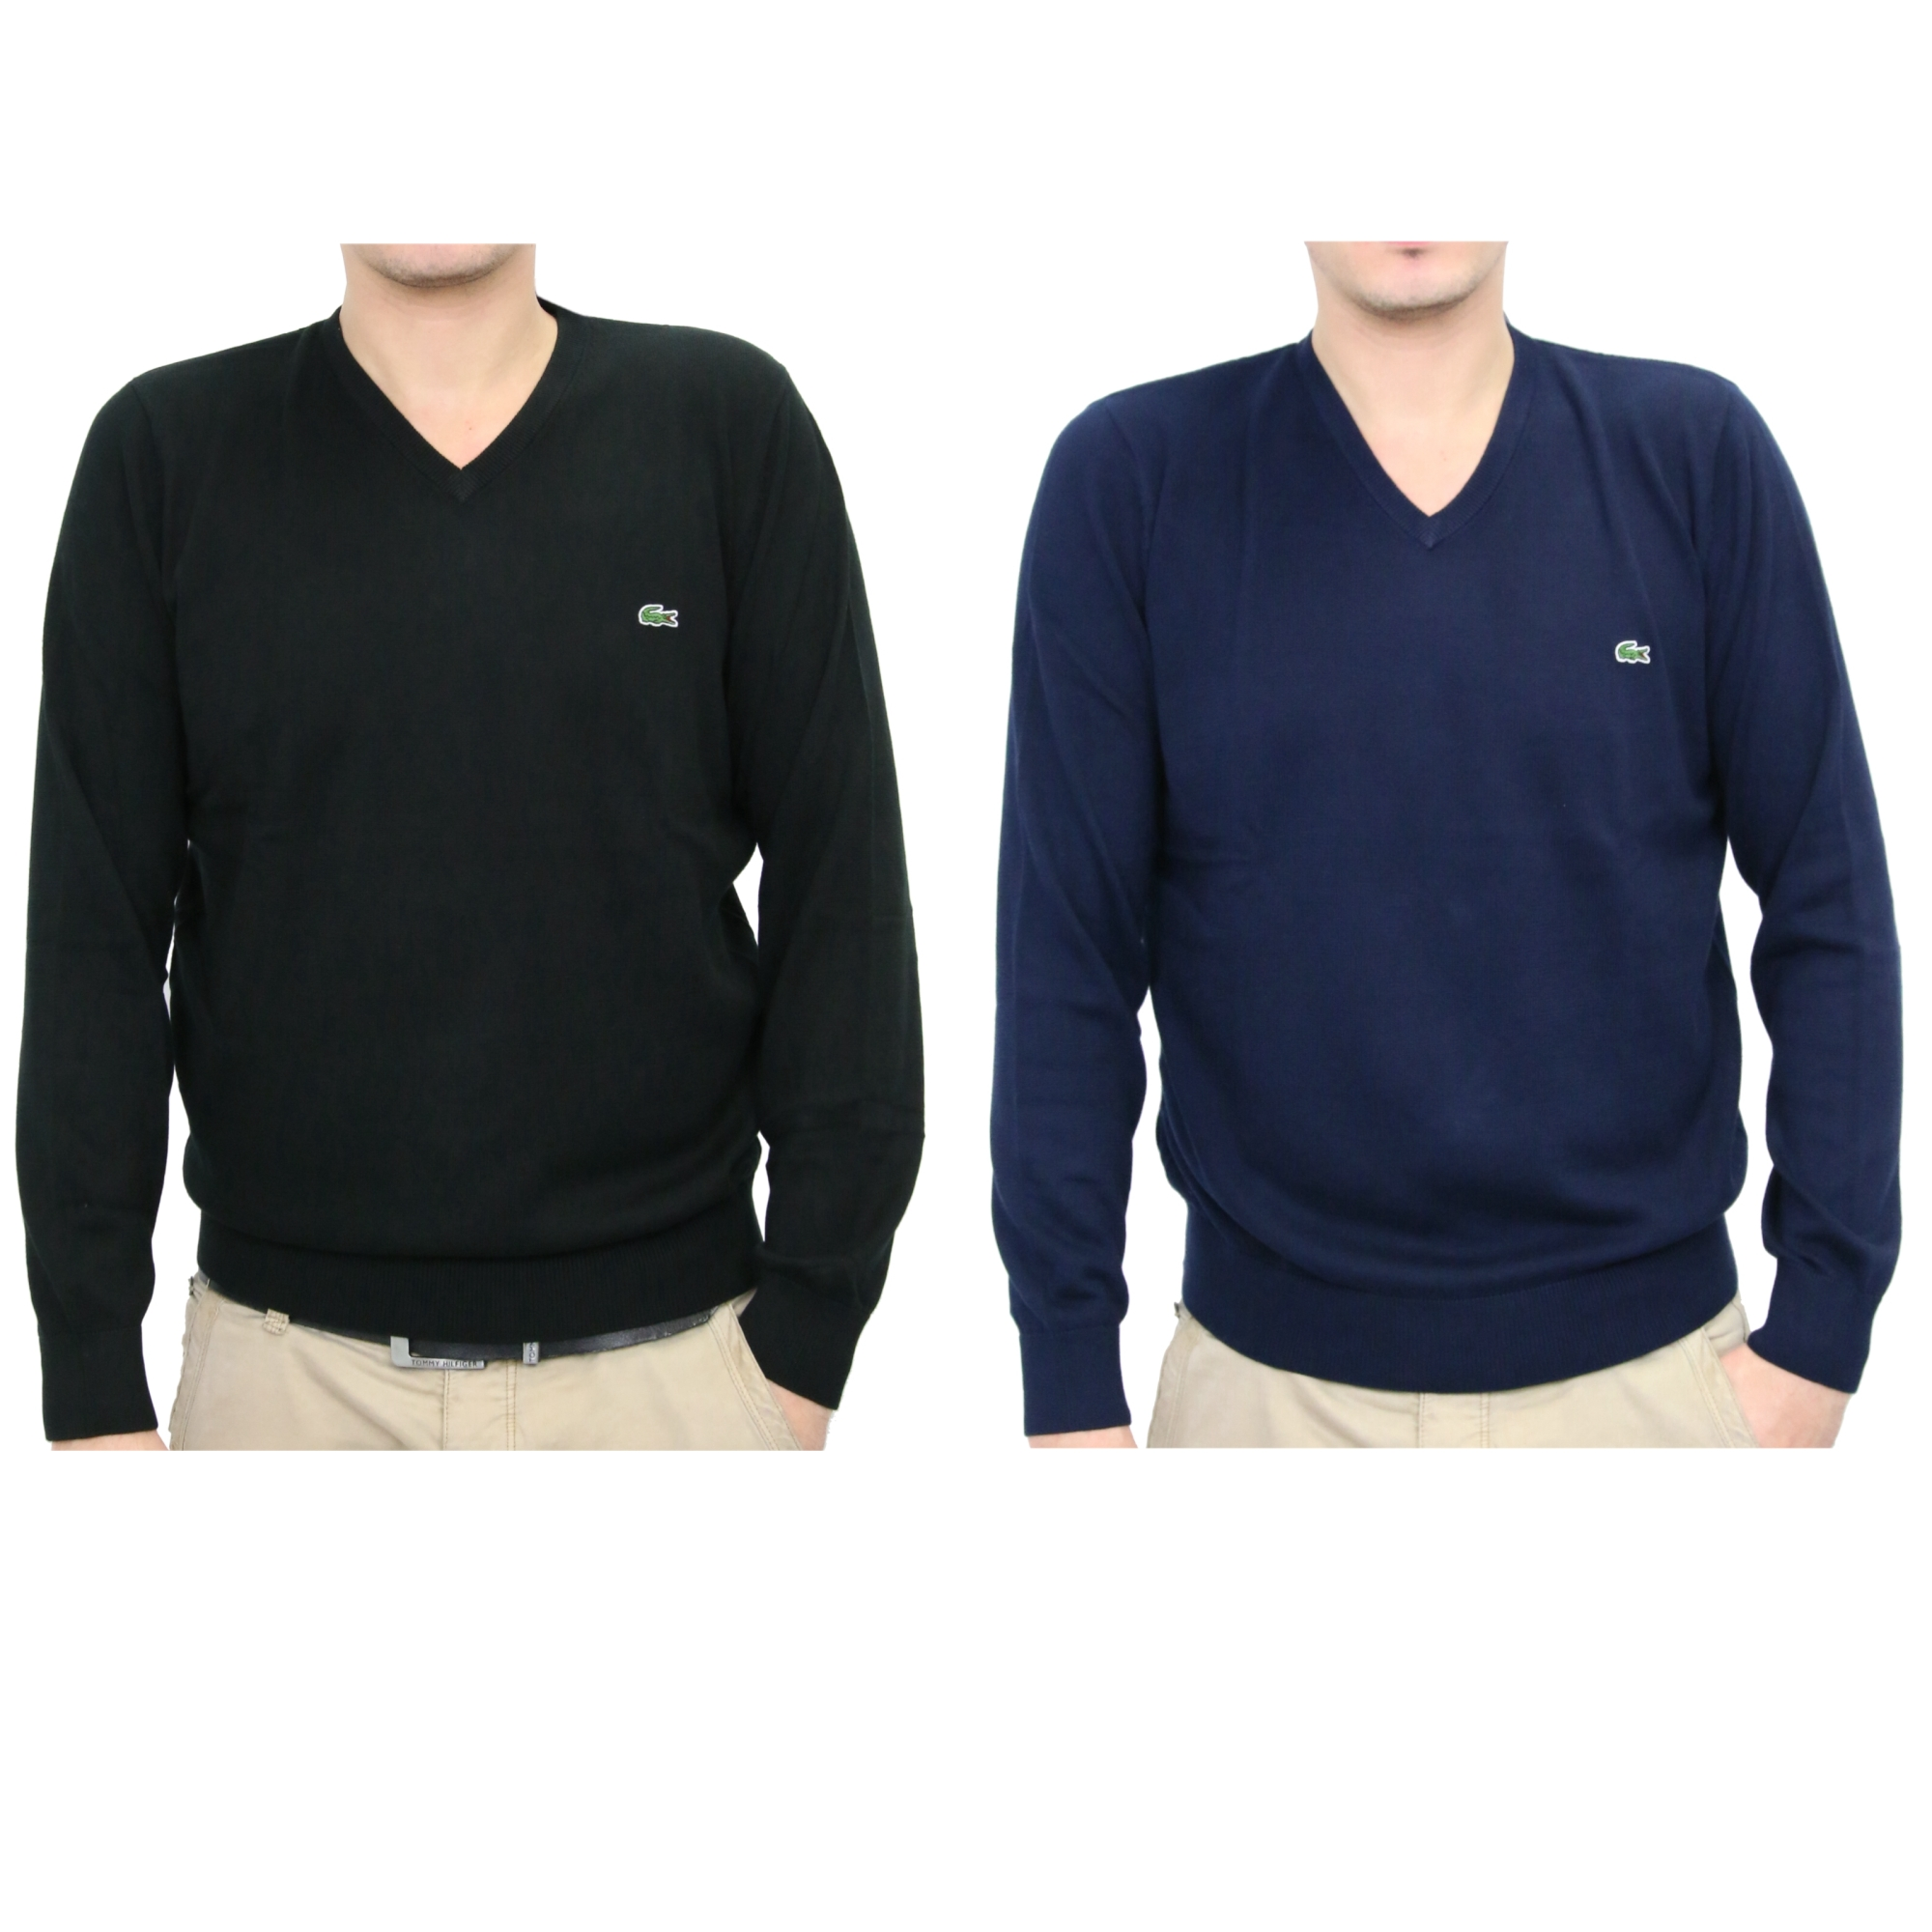 lacoste pullover strickpullover v ausschnitt baumwolle. Black Bedroom Furniture Sets. Home Design Ideas